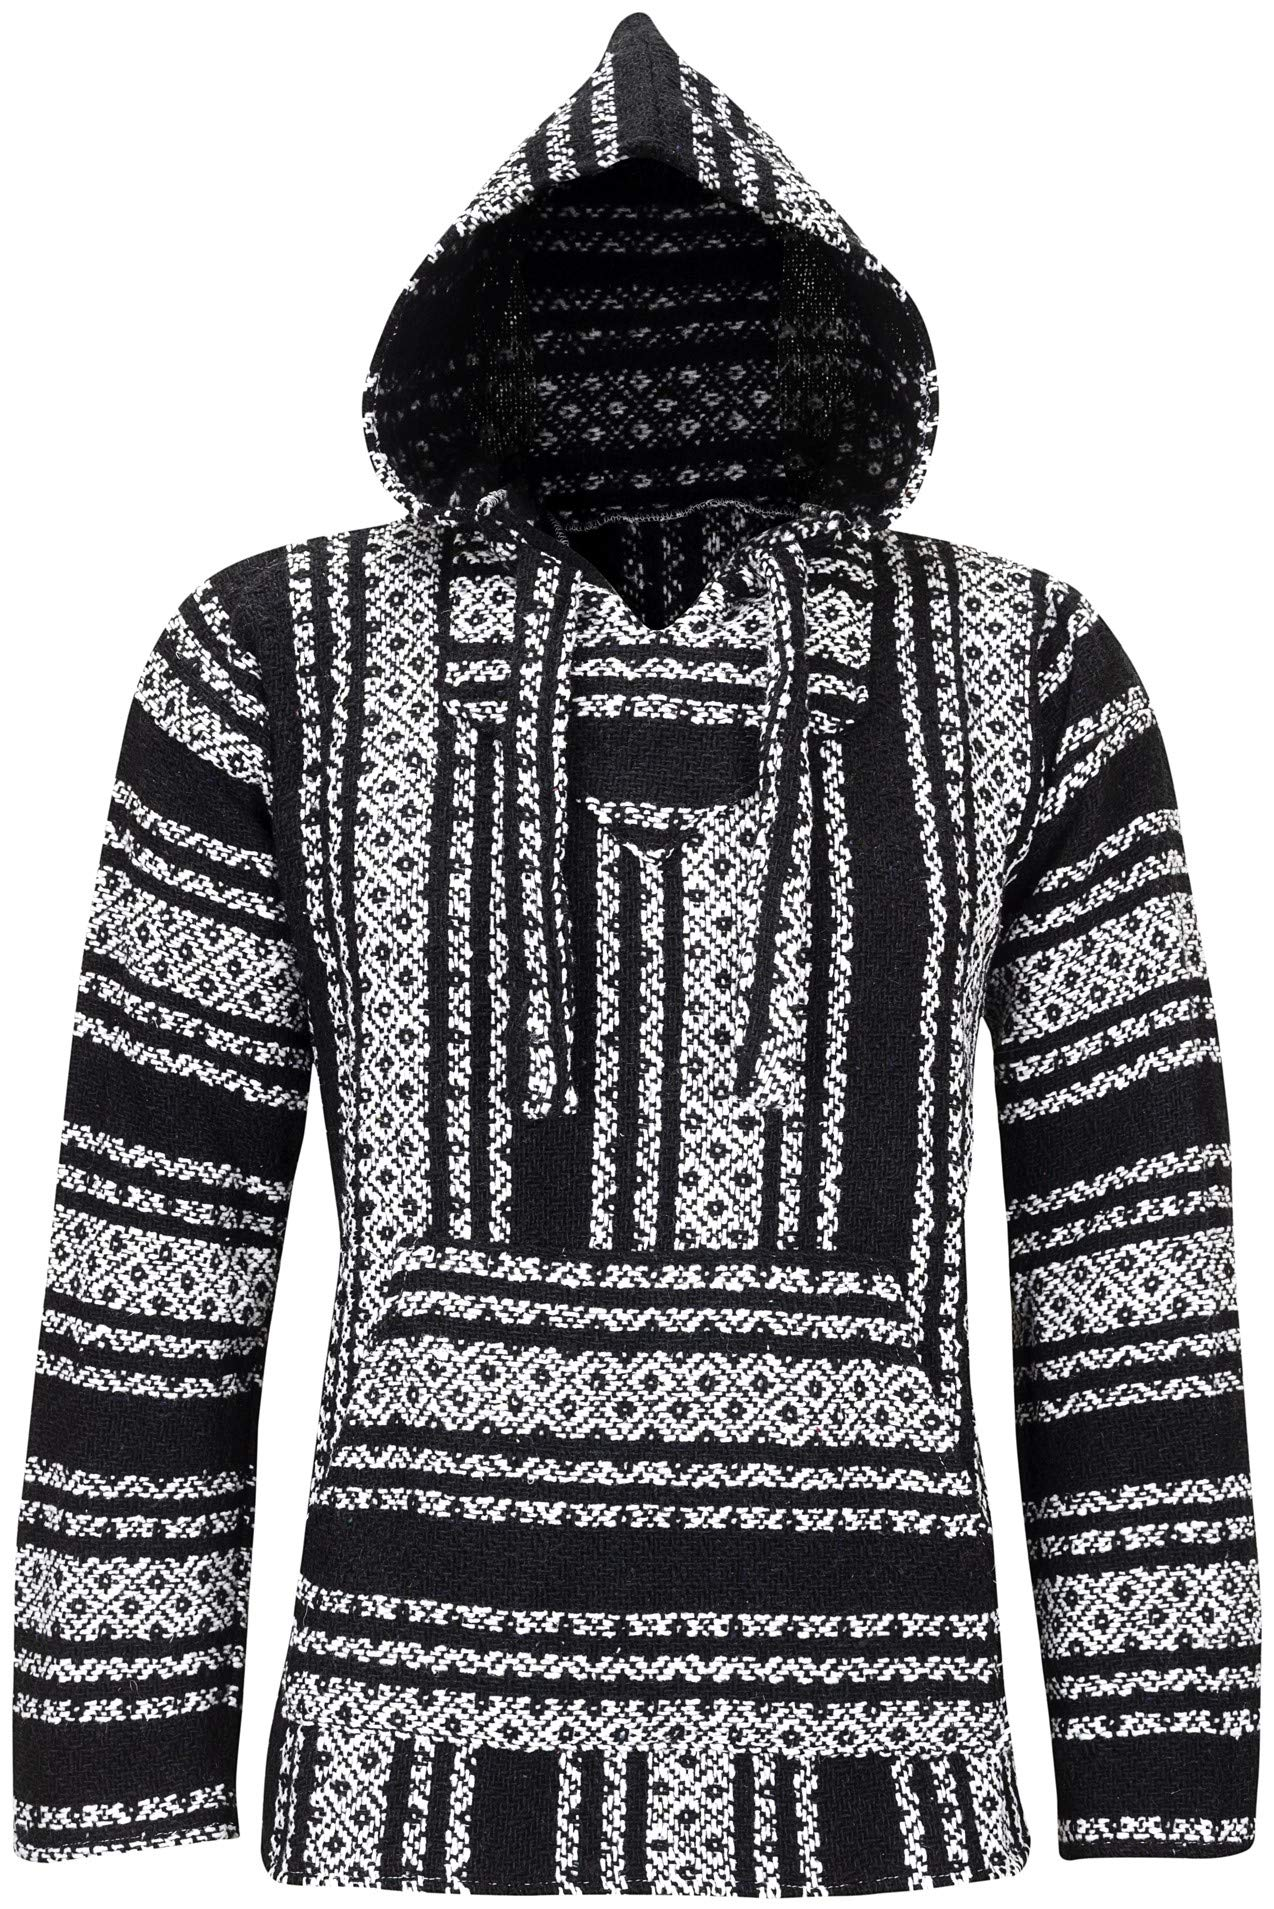 ÖLAND OUTDOORS Baja Hoodie Hippie Mexican Poncho Men Women Boys Girls – Made in Mexico – (Texture Pullover Hoody)